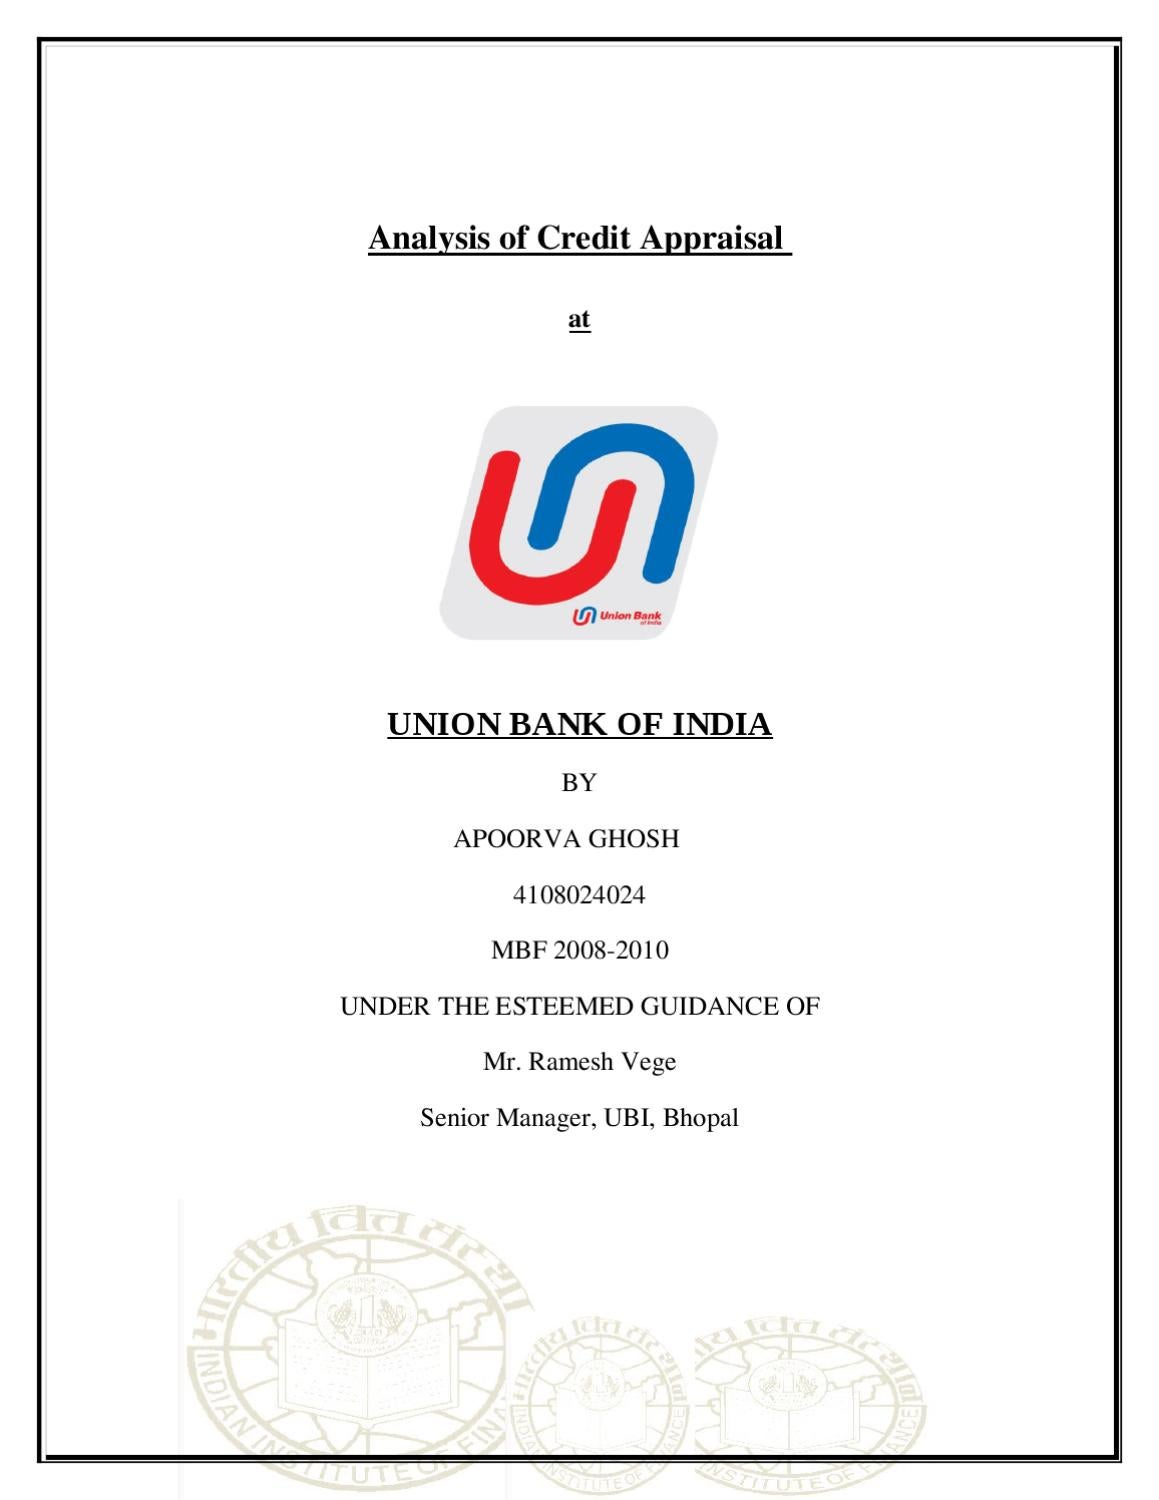 Union bank of india forex recruitment